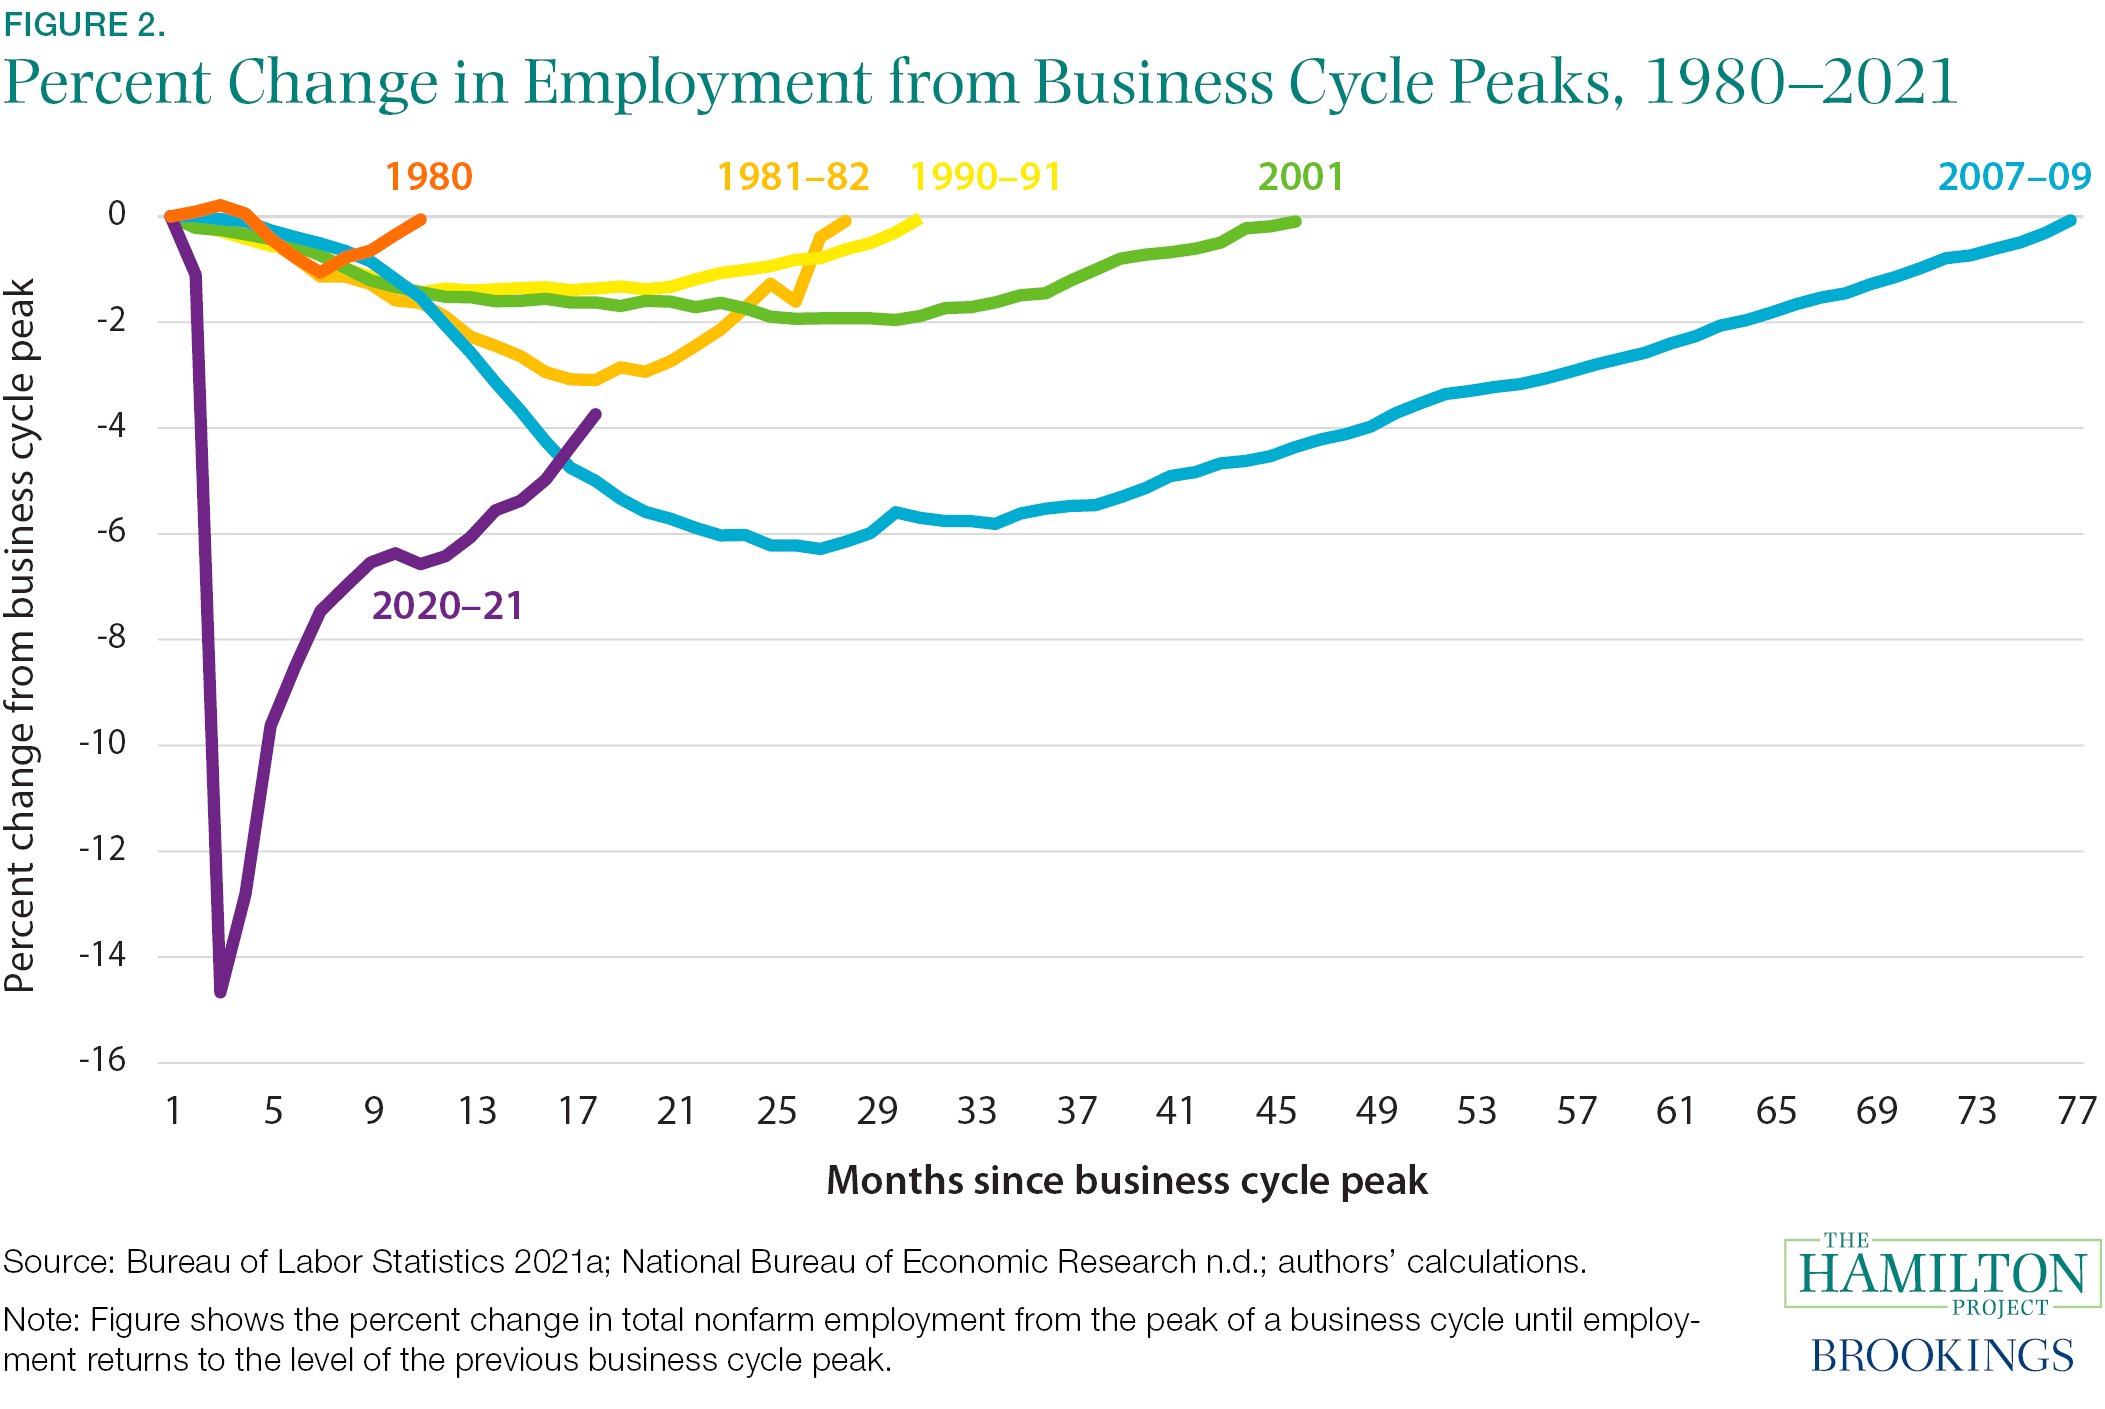 Fact 2: The sharp decline in employment in spring 2020, which was largely concentrated in the services sector, has only partially reversed.